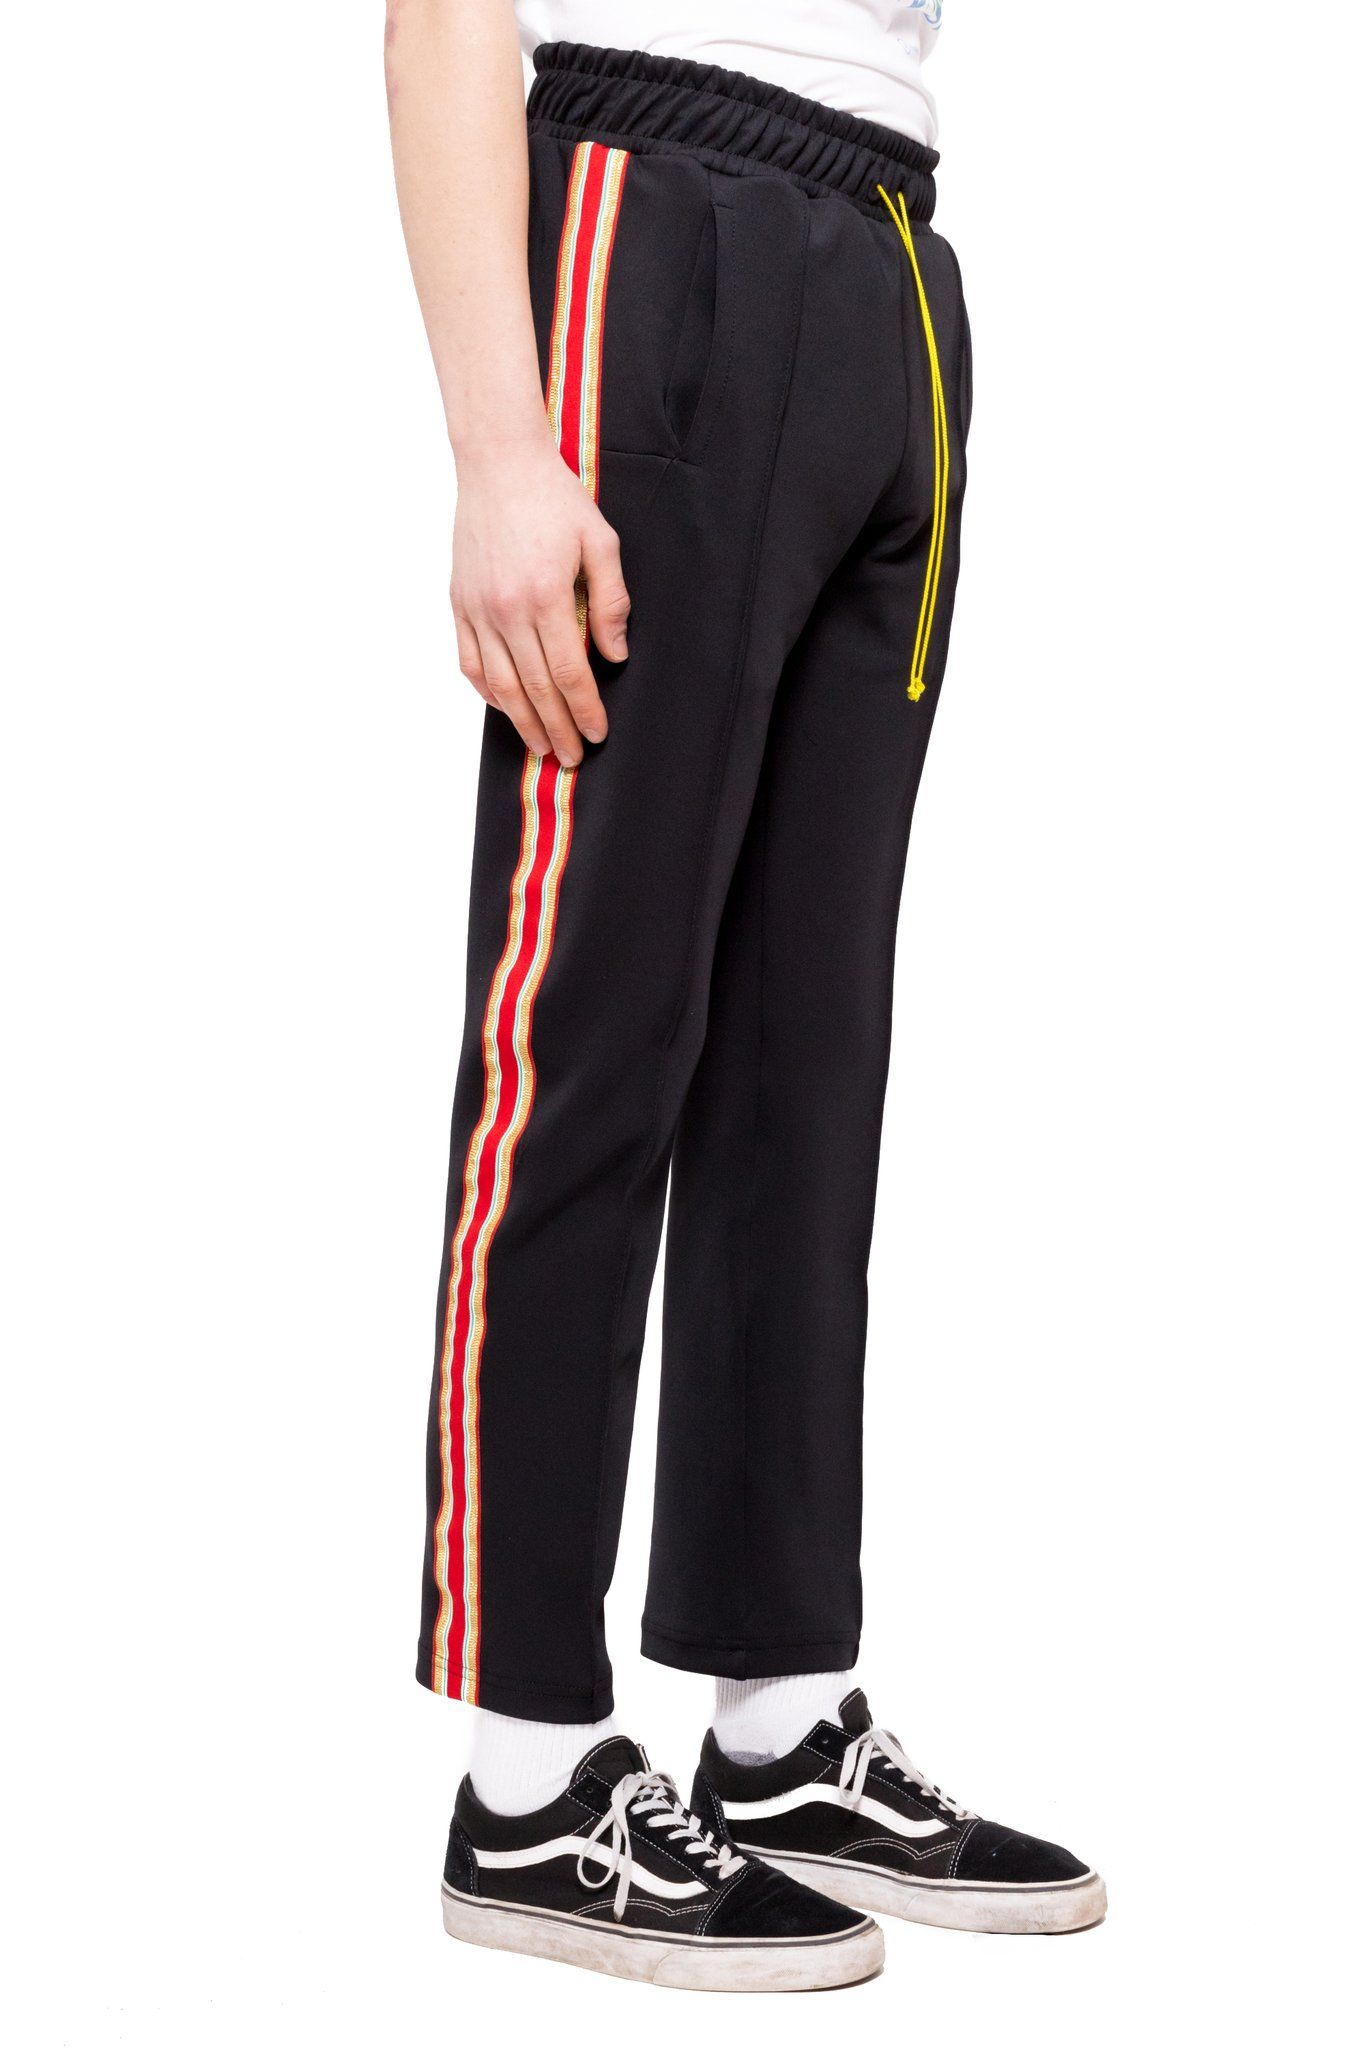 100% authentic 7c6a6 f1f4a Bravo Track Pants - BlackRed